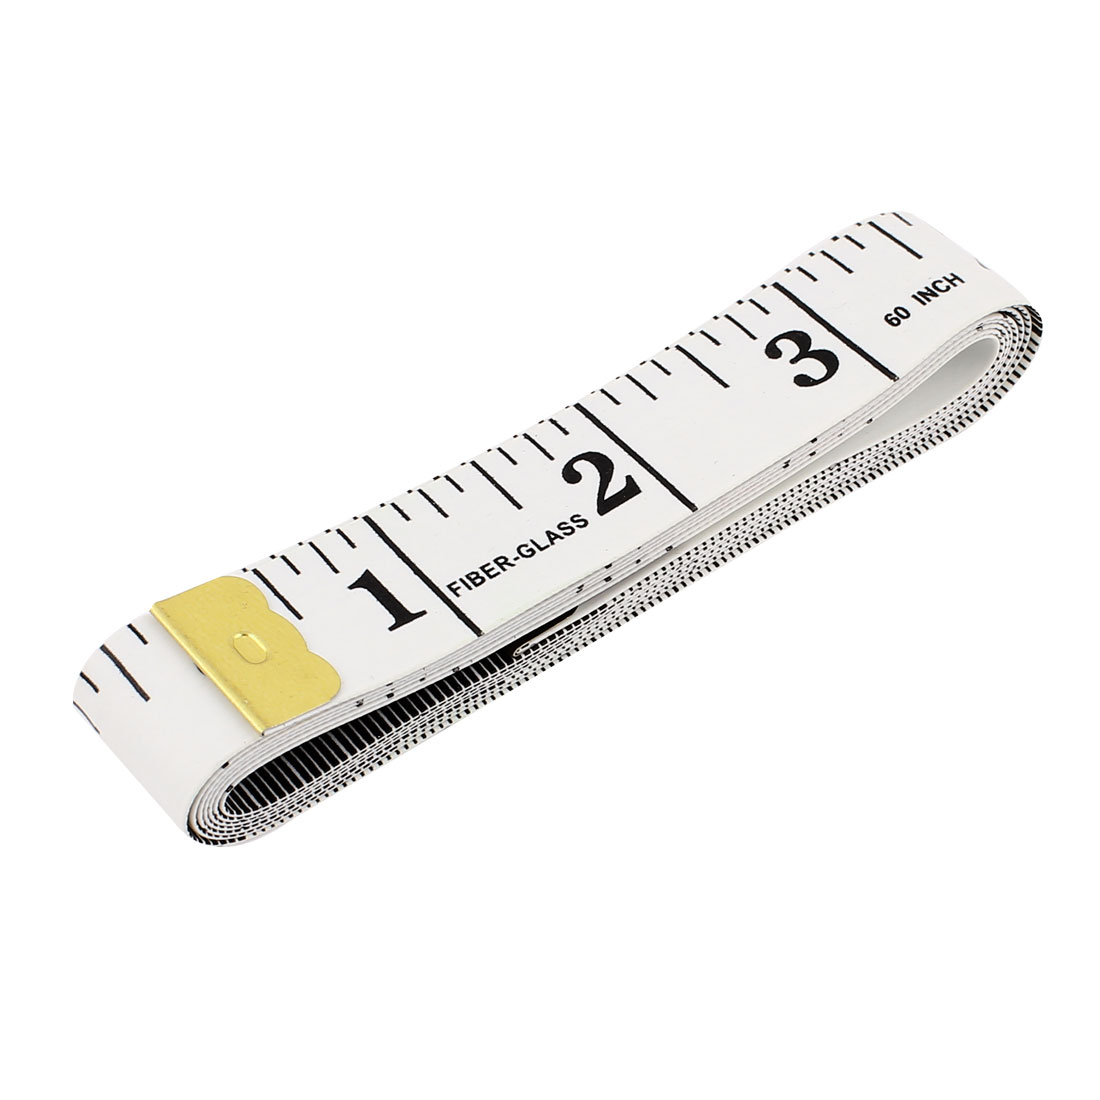 "Body Measuring Sewing Cloth Tailor Tape Soft Flat Ruler White 60"" 150cm"